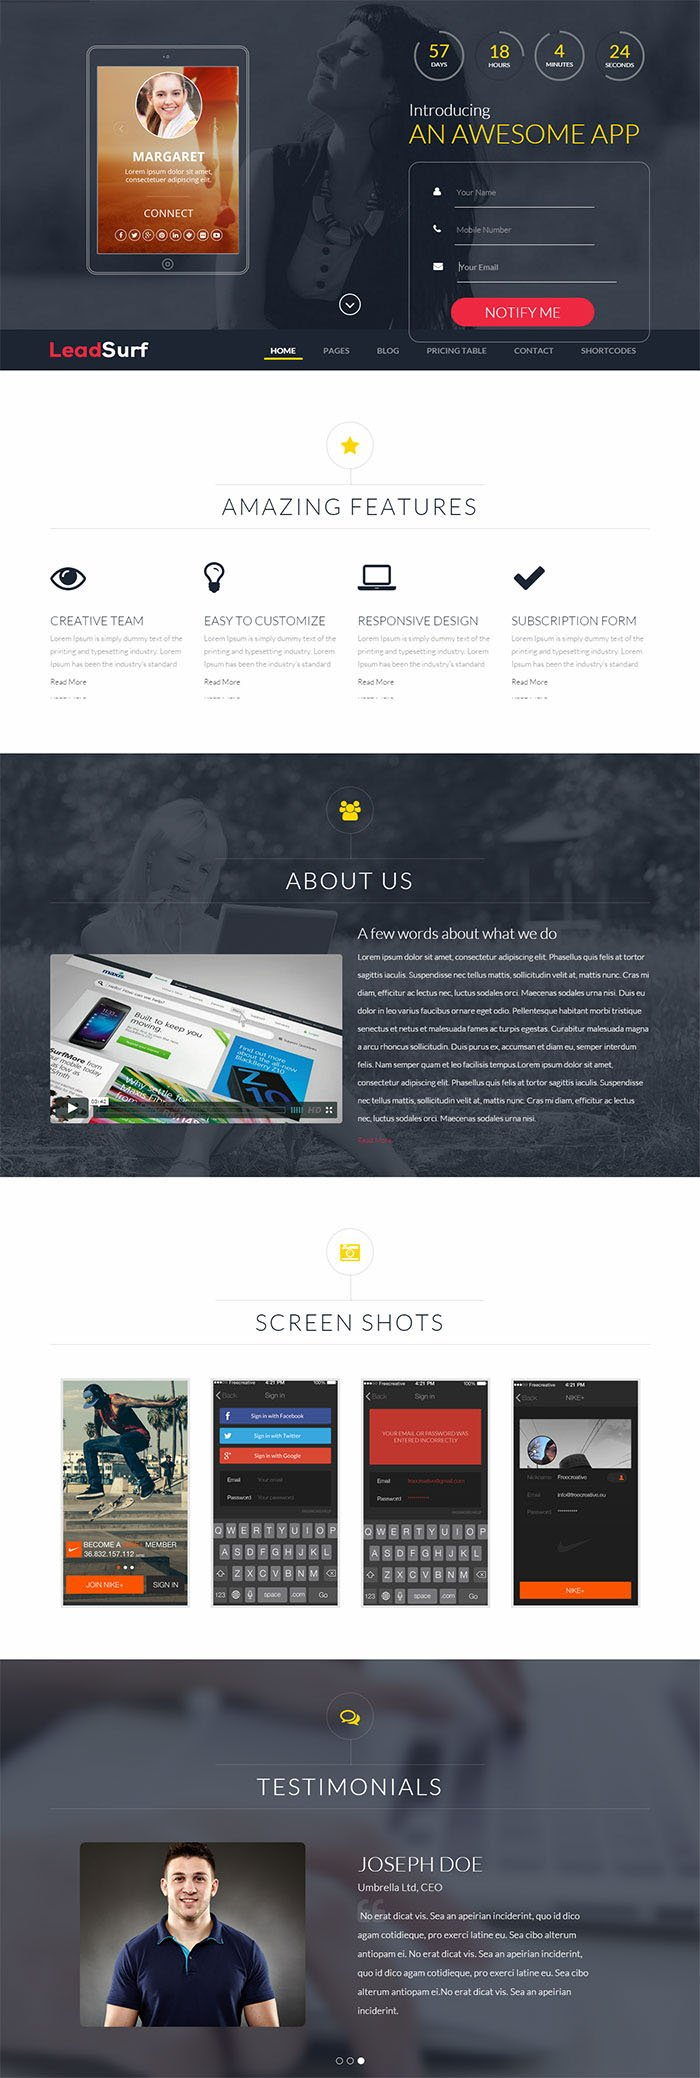 LeadSurf WordPress Theme